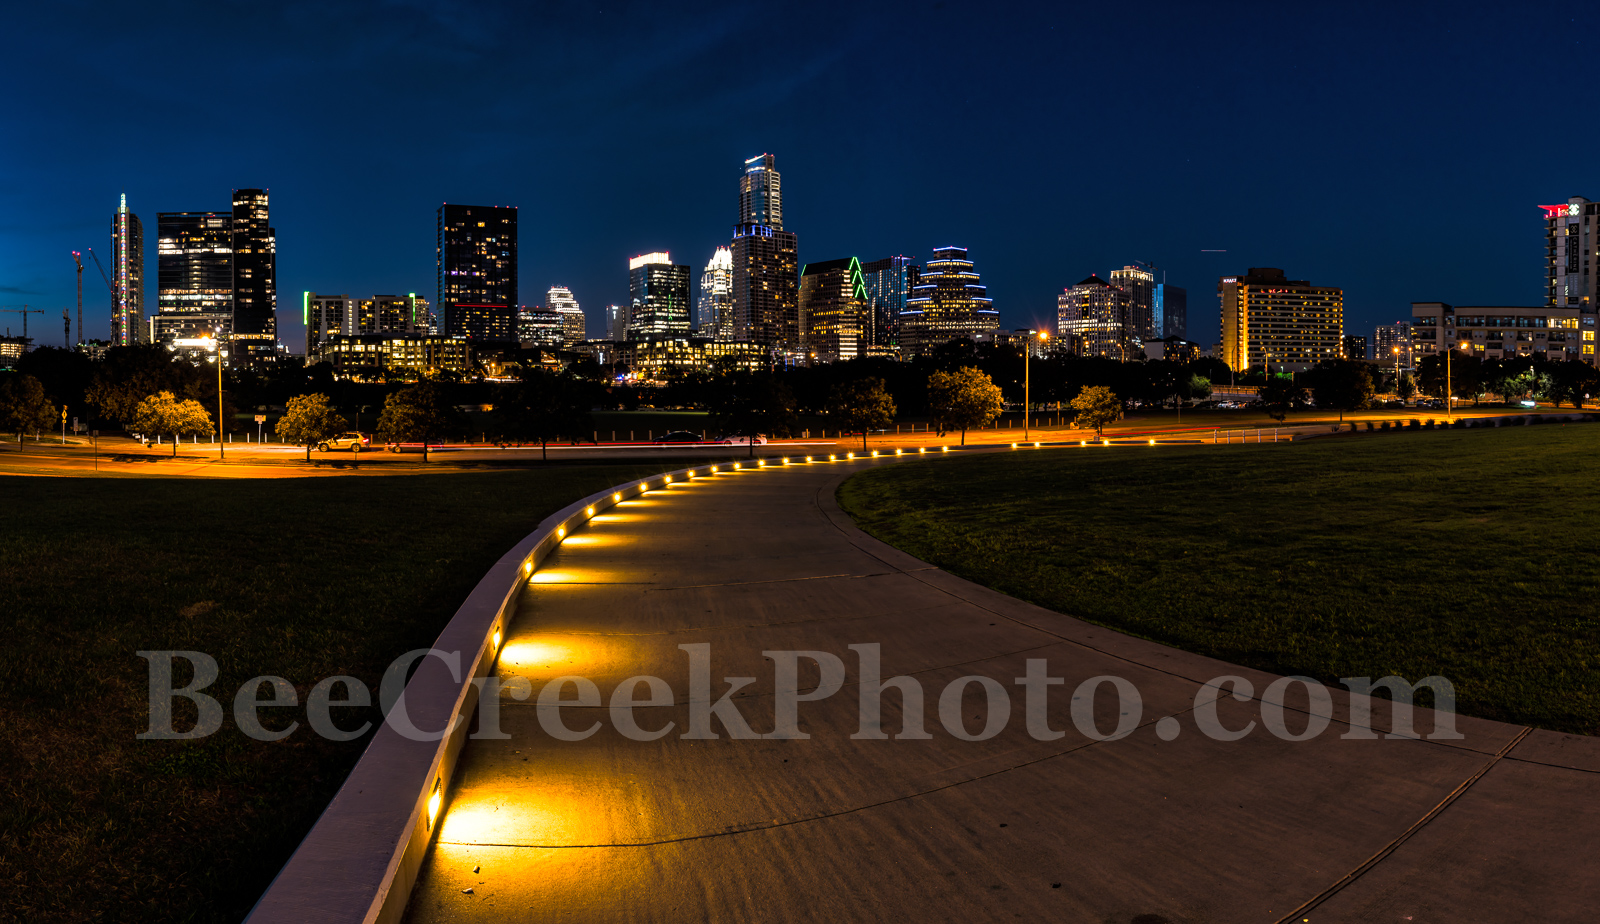 Austin, Skyline, night, downtown, cityscape, path, lights, walkway, high rise, skycrapers, Lady Bird Lake, Frost, Austonian, pano, panorama, Independence, modern, urban,Long Center, events, images fro, photo